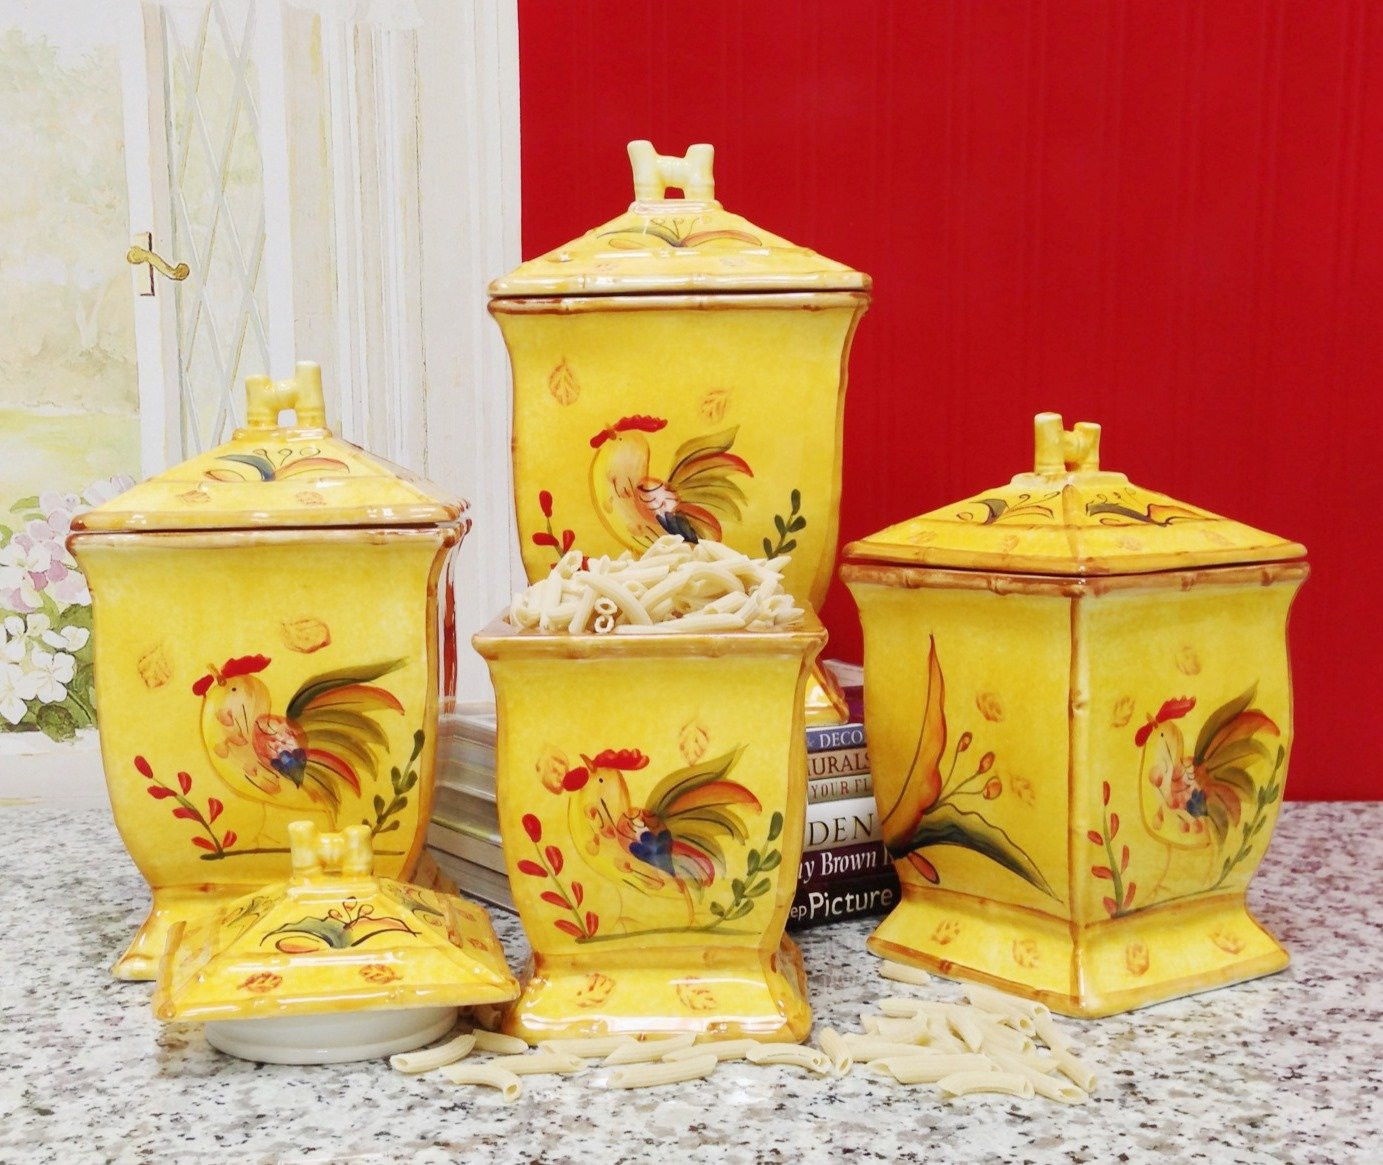 Best ideas about Rooster Kitchen Decor . Save or Pin Rooster Kitchen Decor Now.